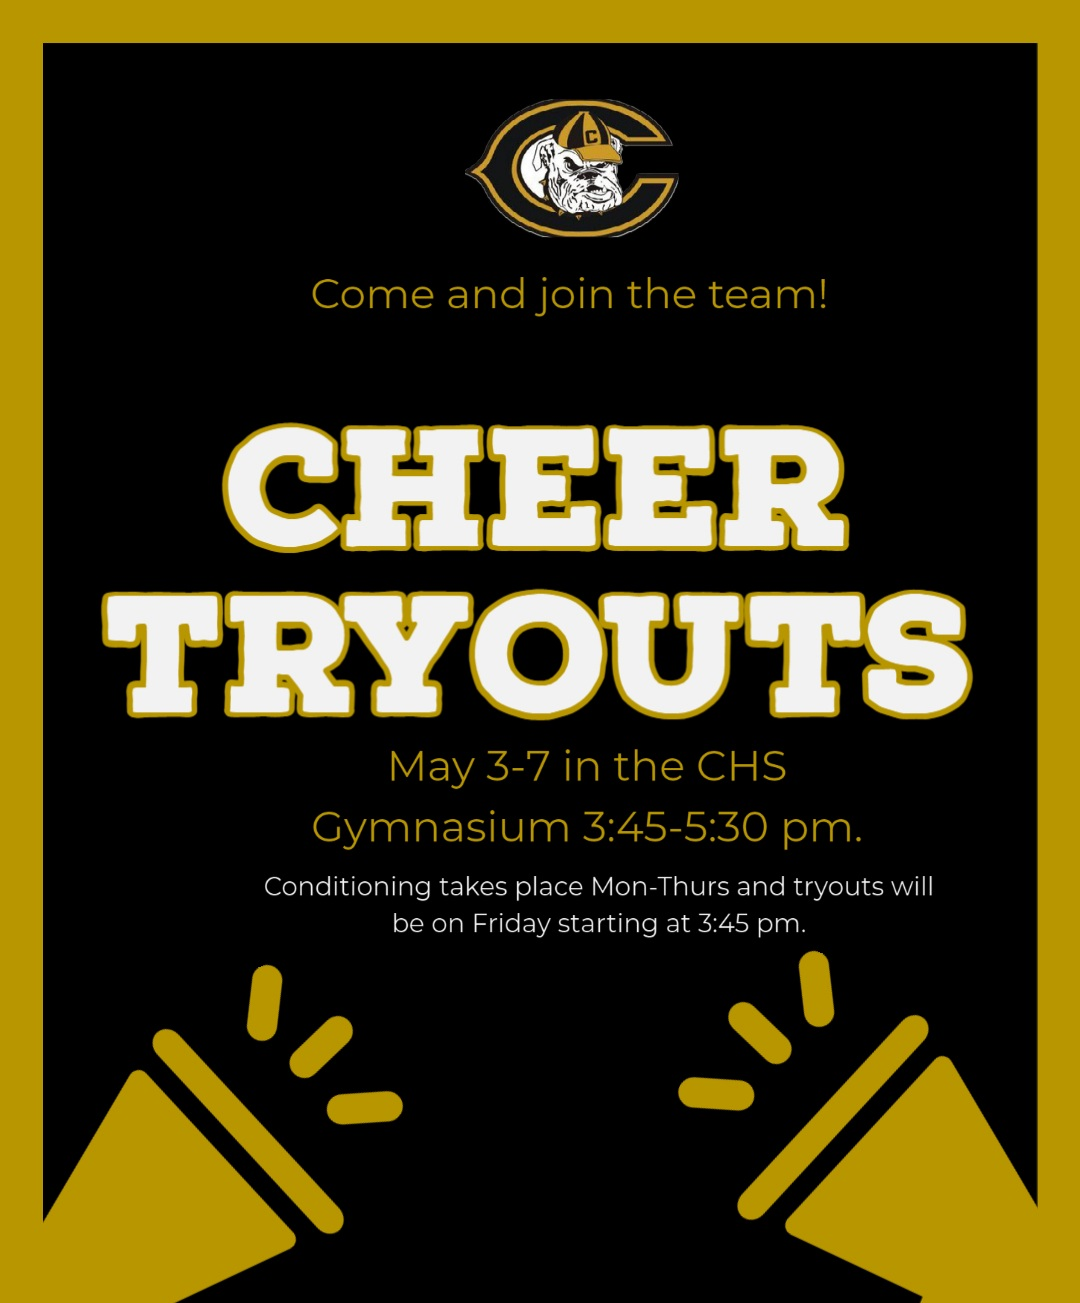 CHS Cheer Tryouts